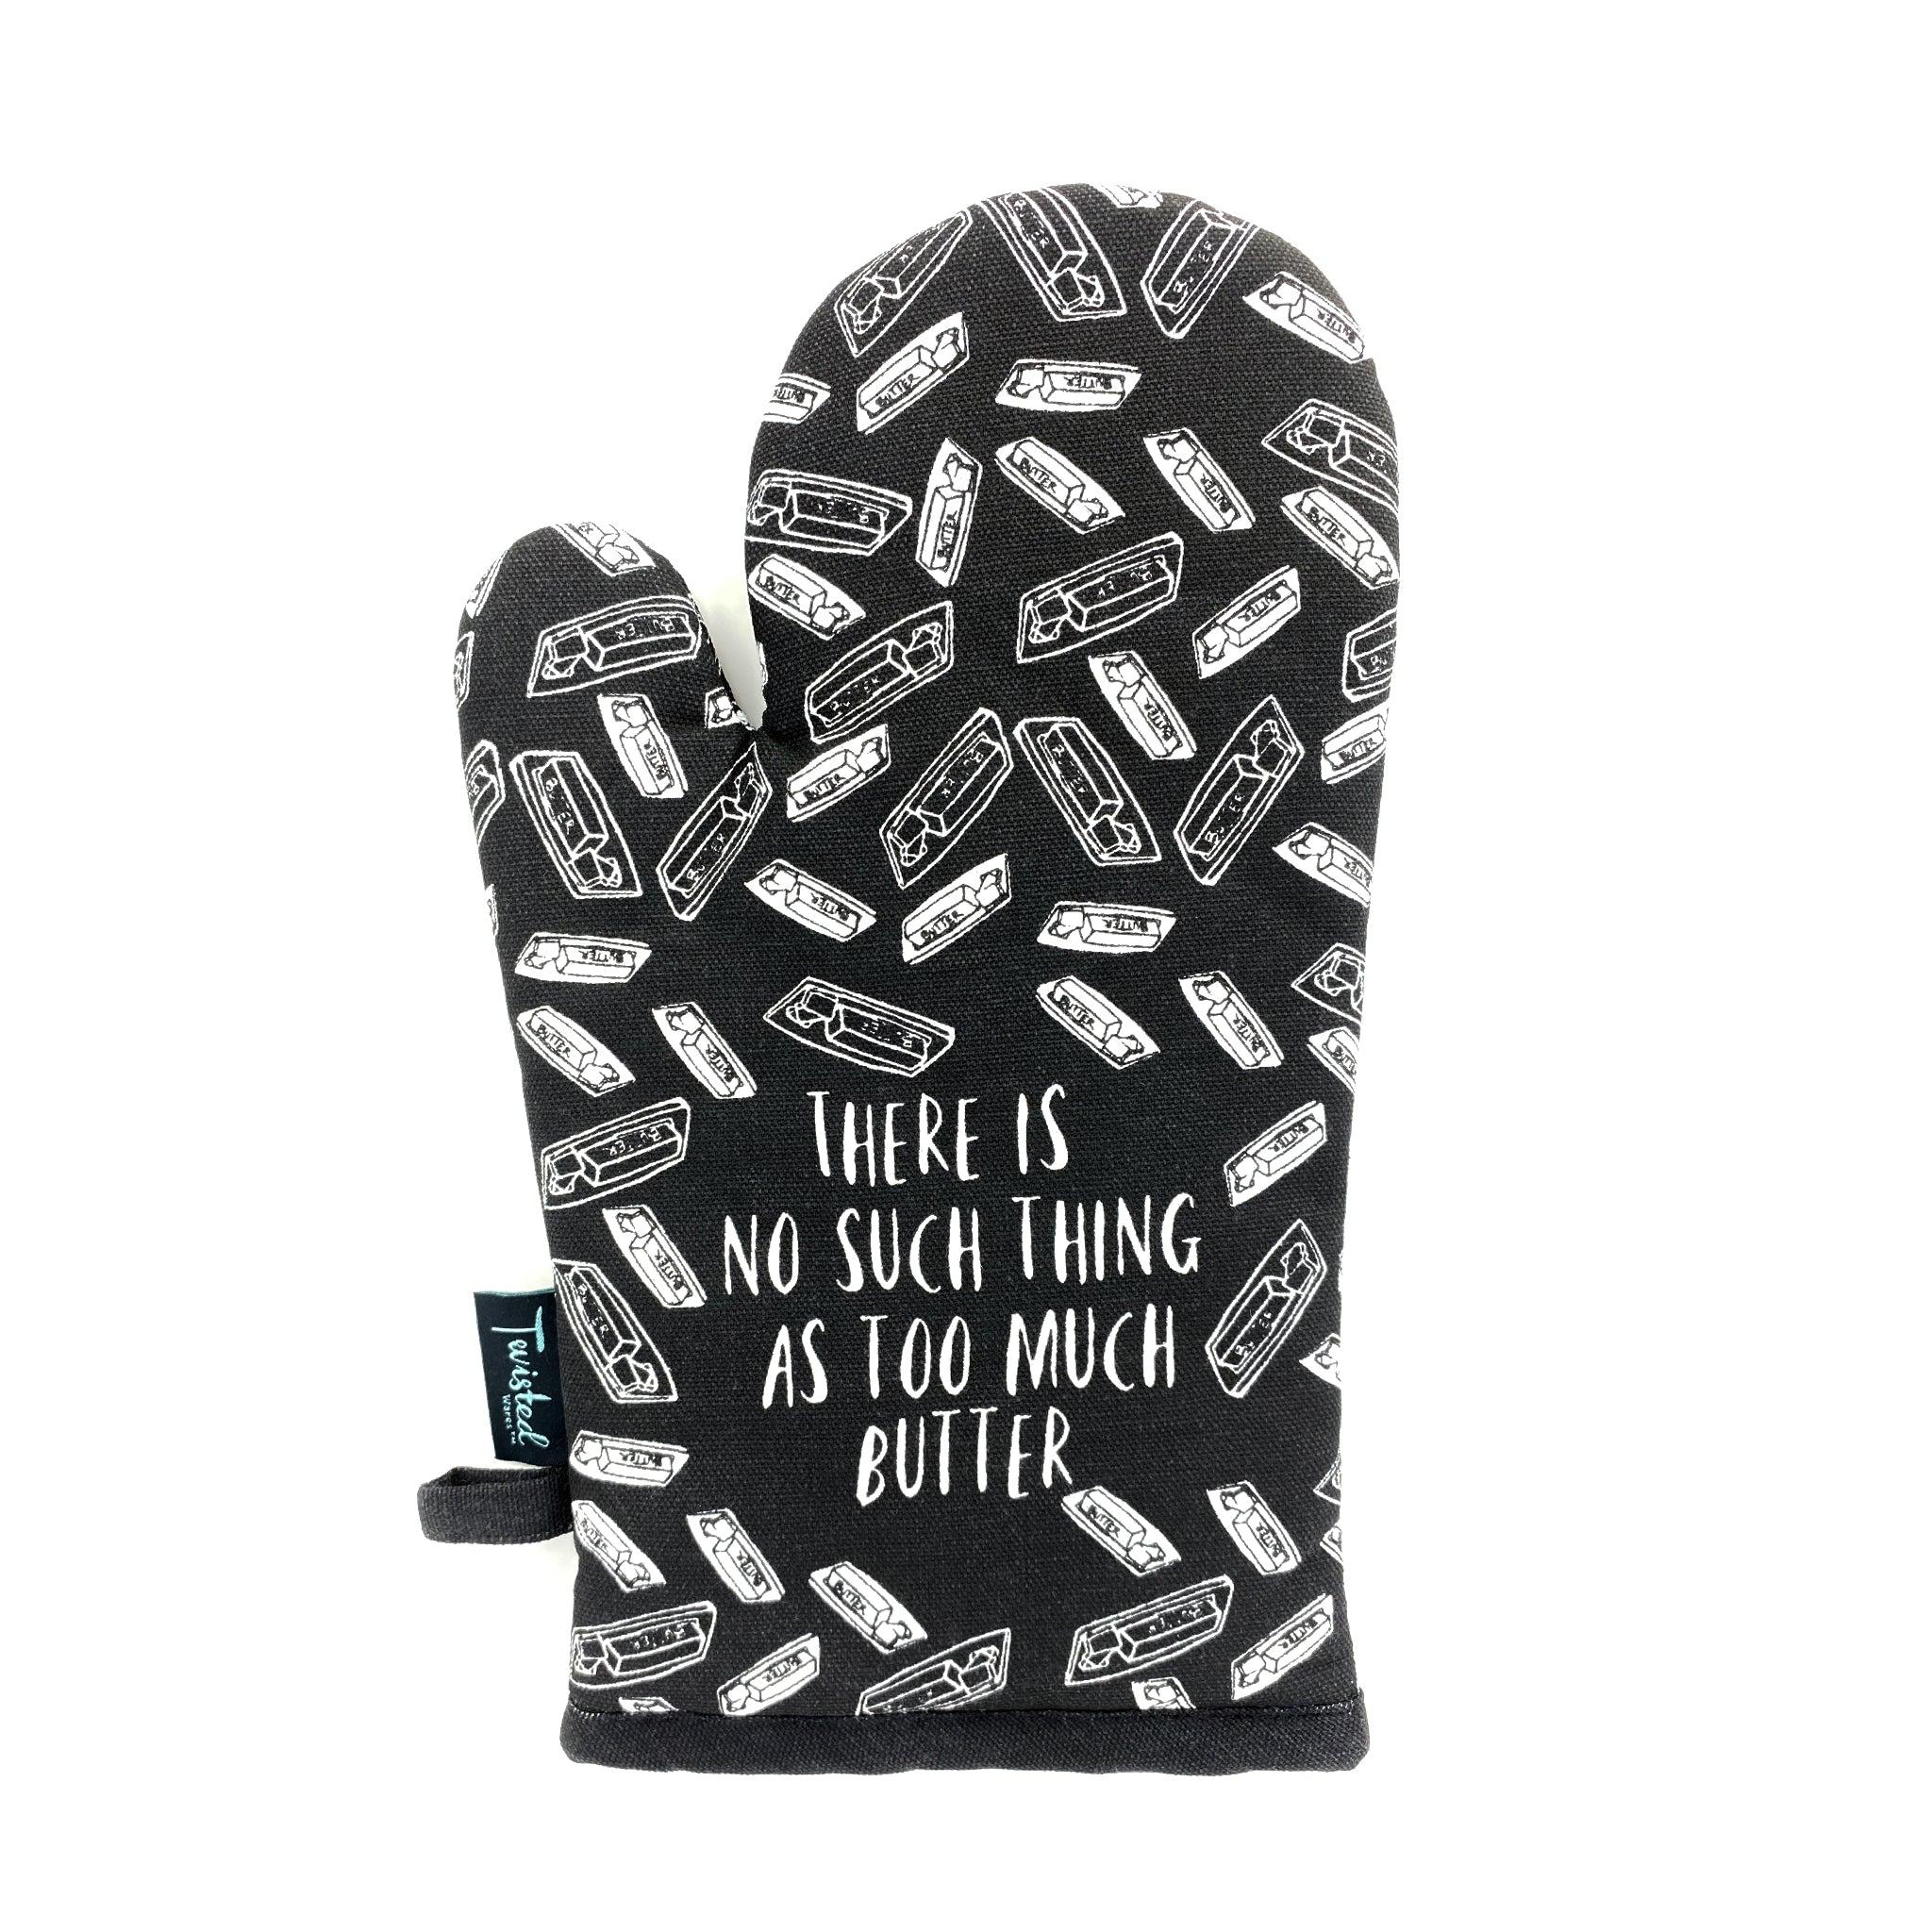 There's No Such Thing As Too Much Butter Oven Mitt